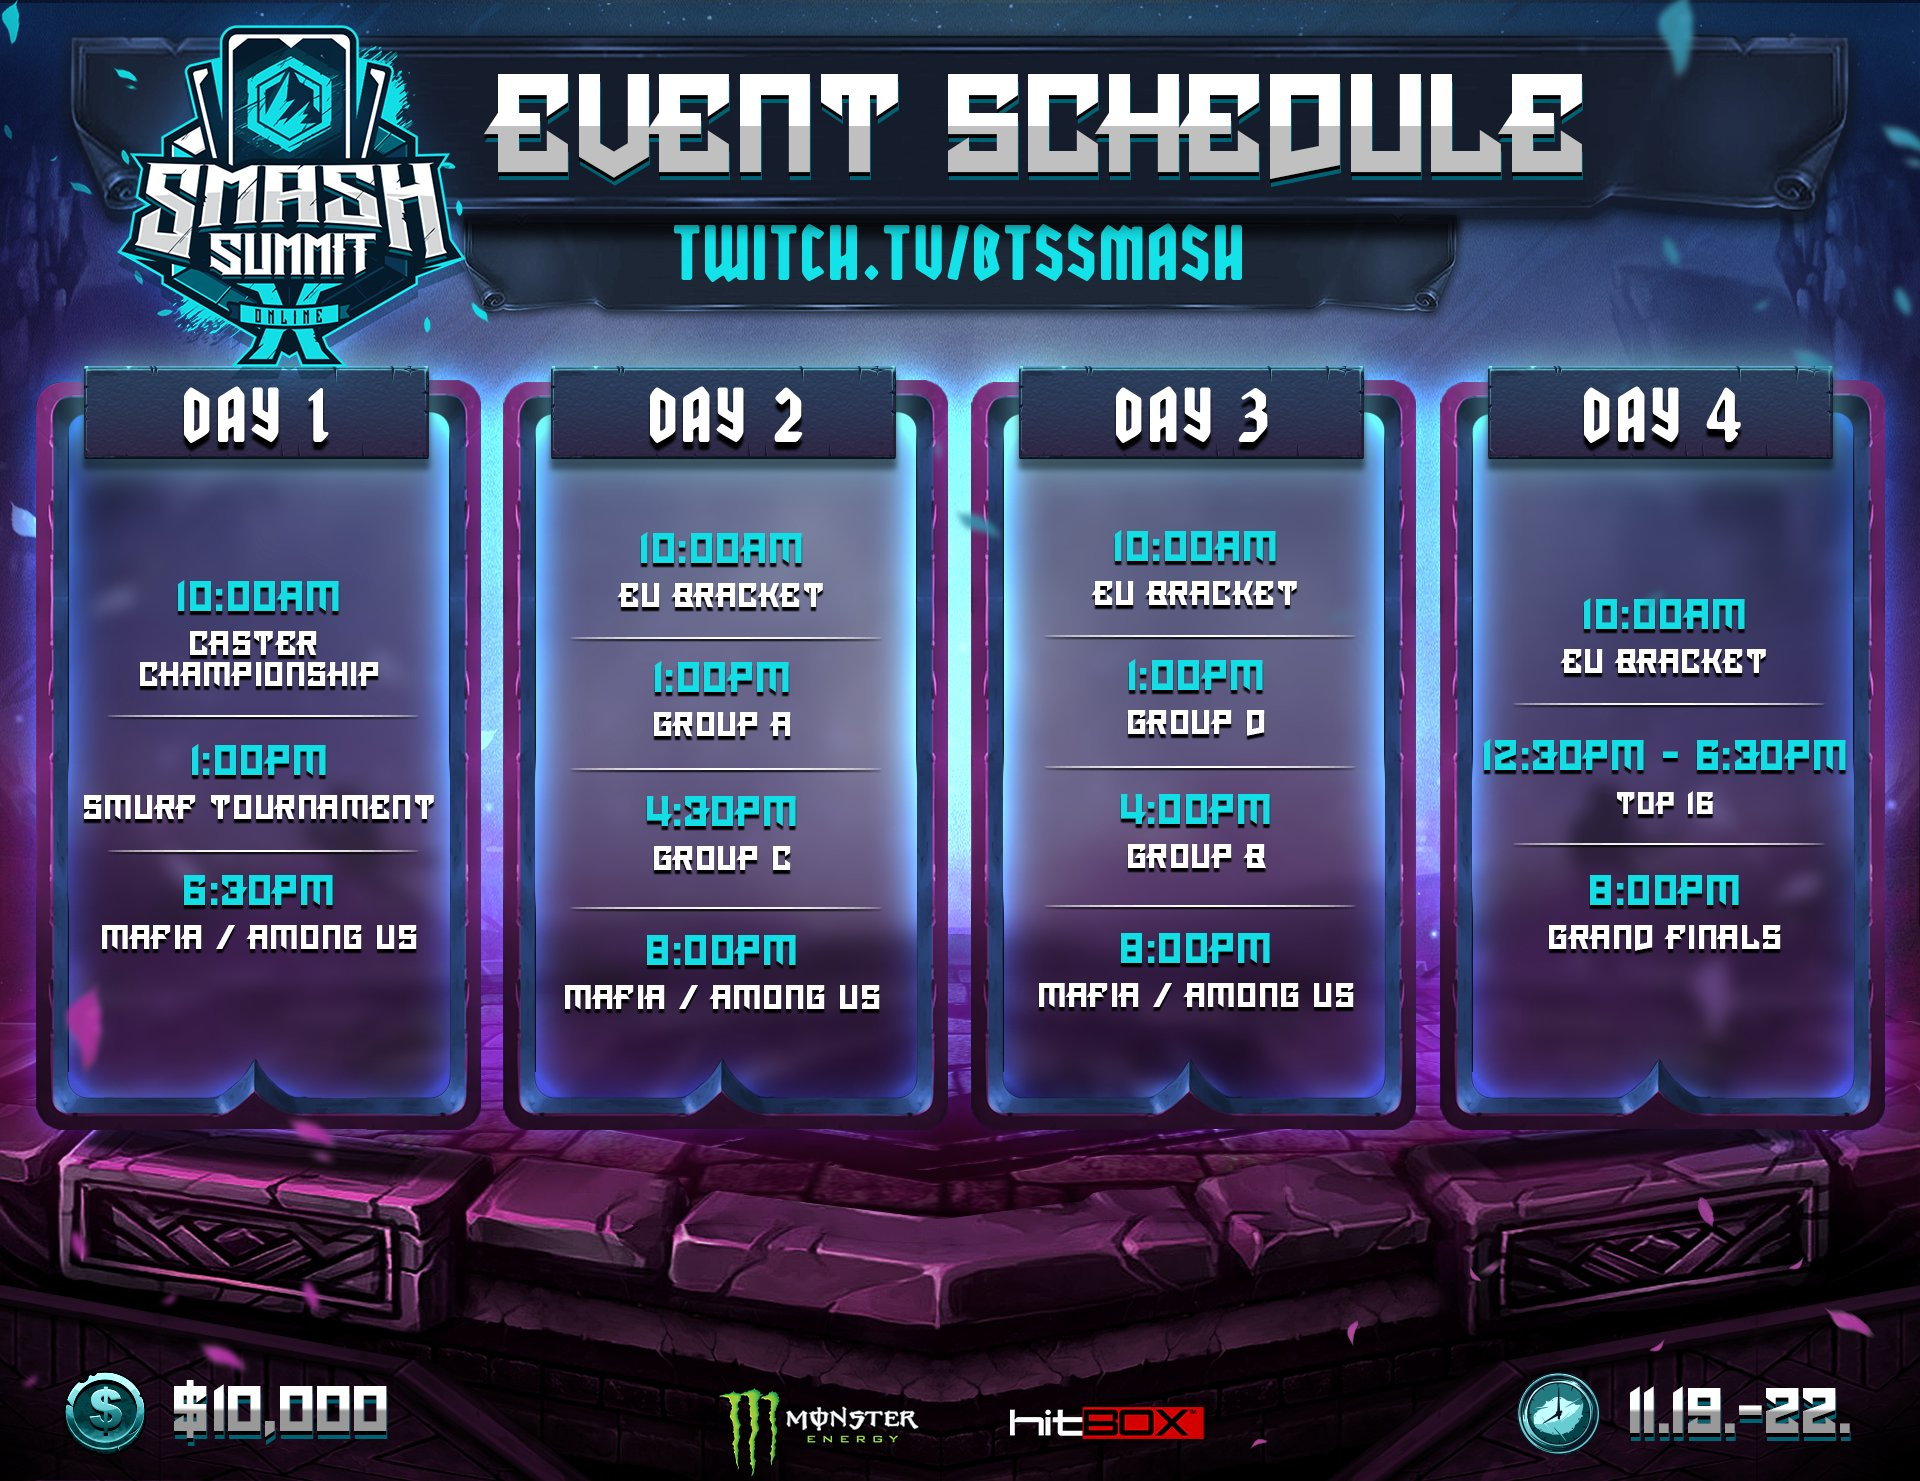 Smash Summit 10 Online Event Schedule 1 out of 1 image gallery